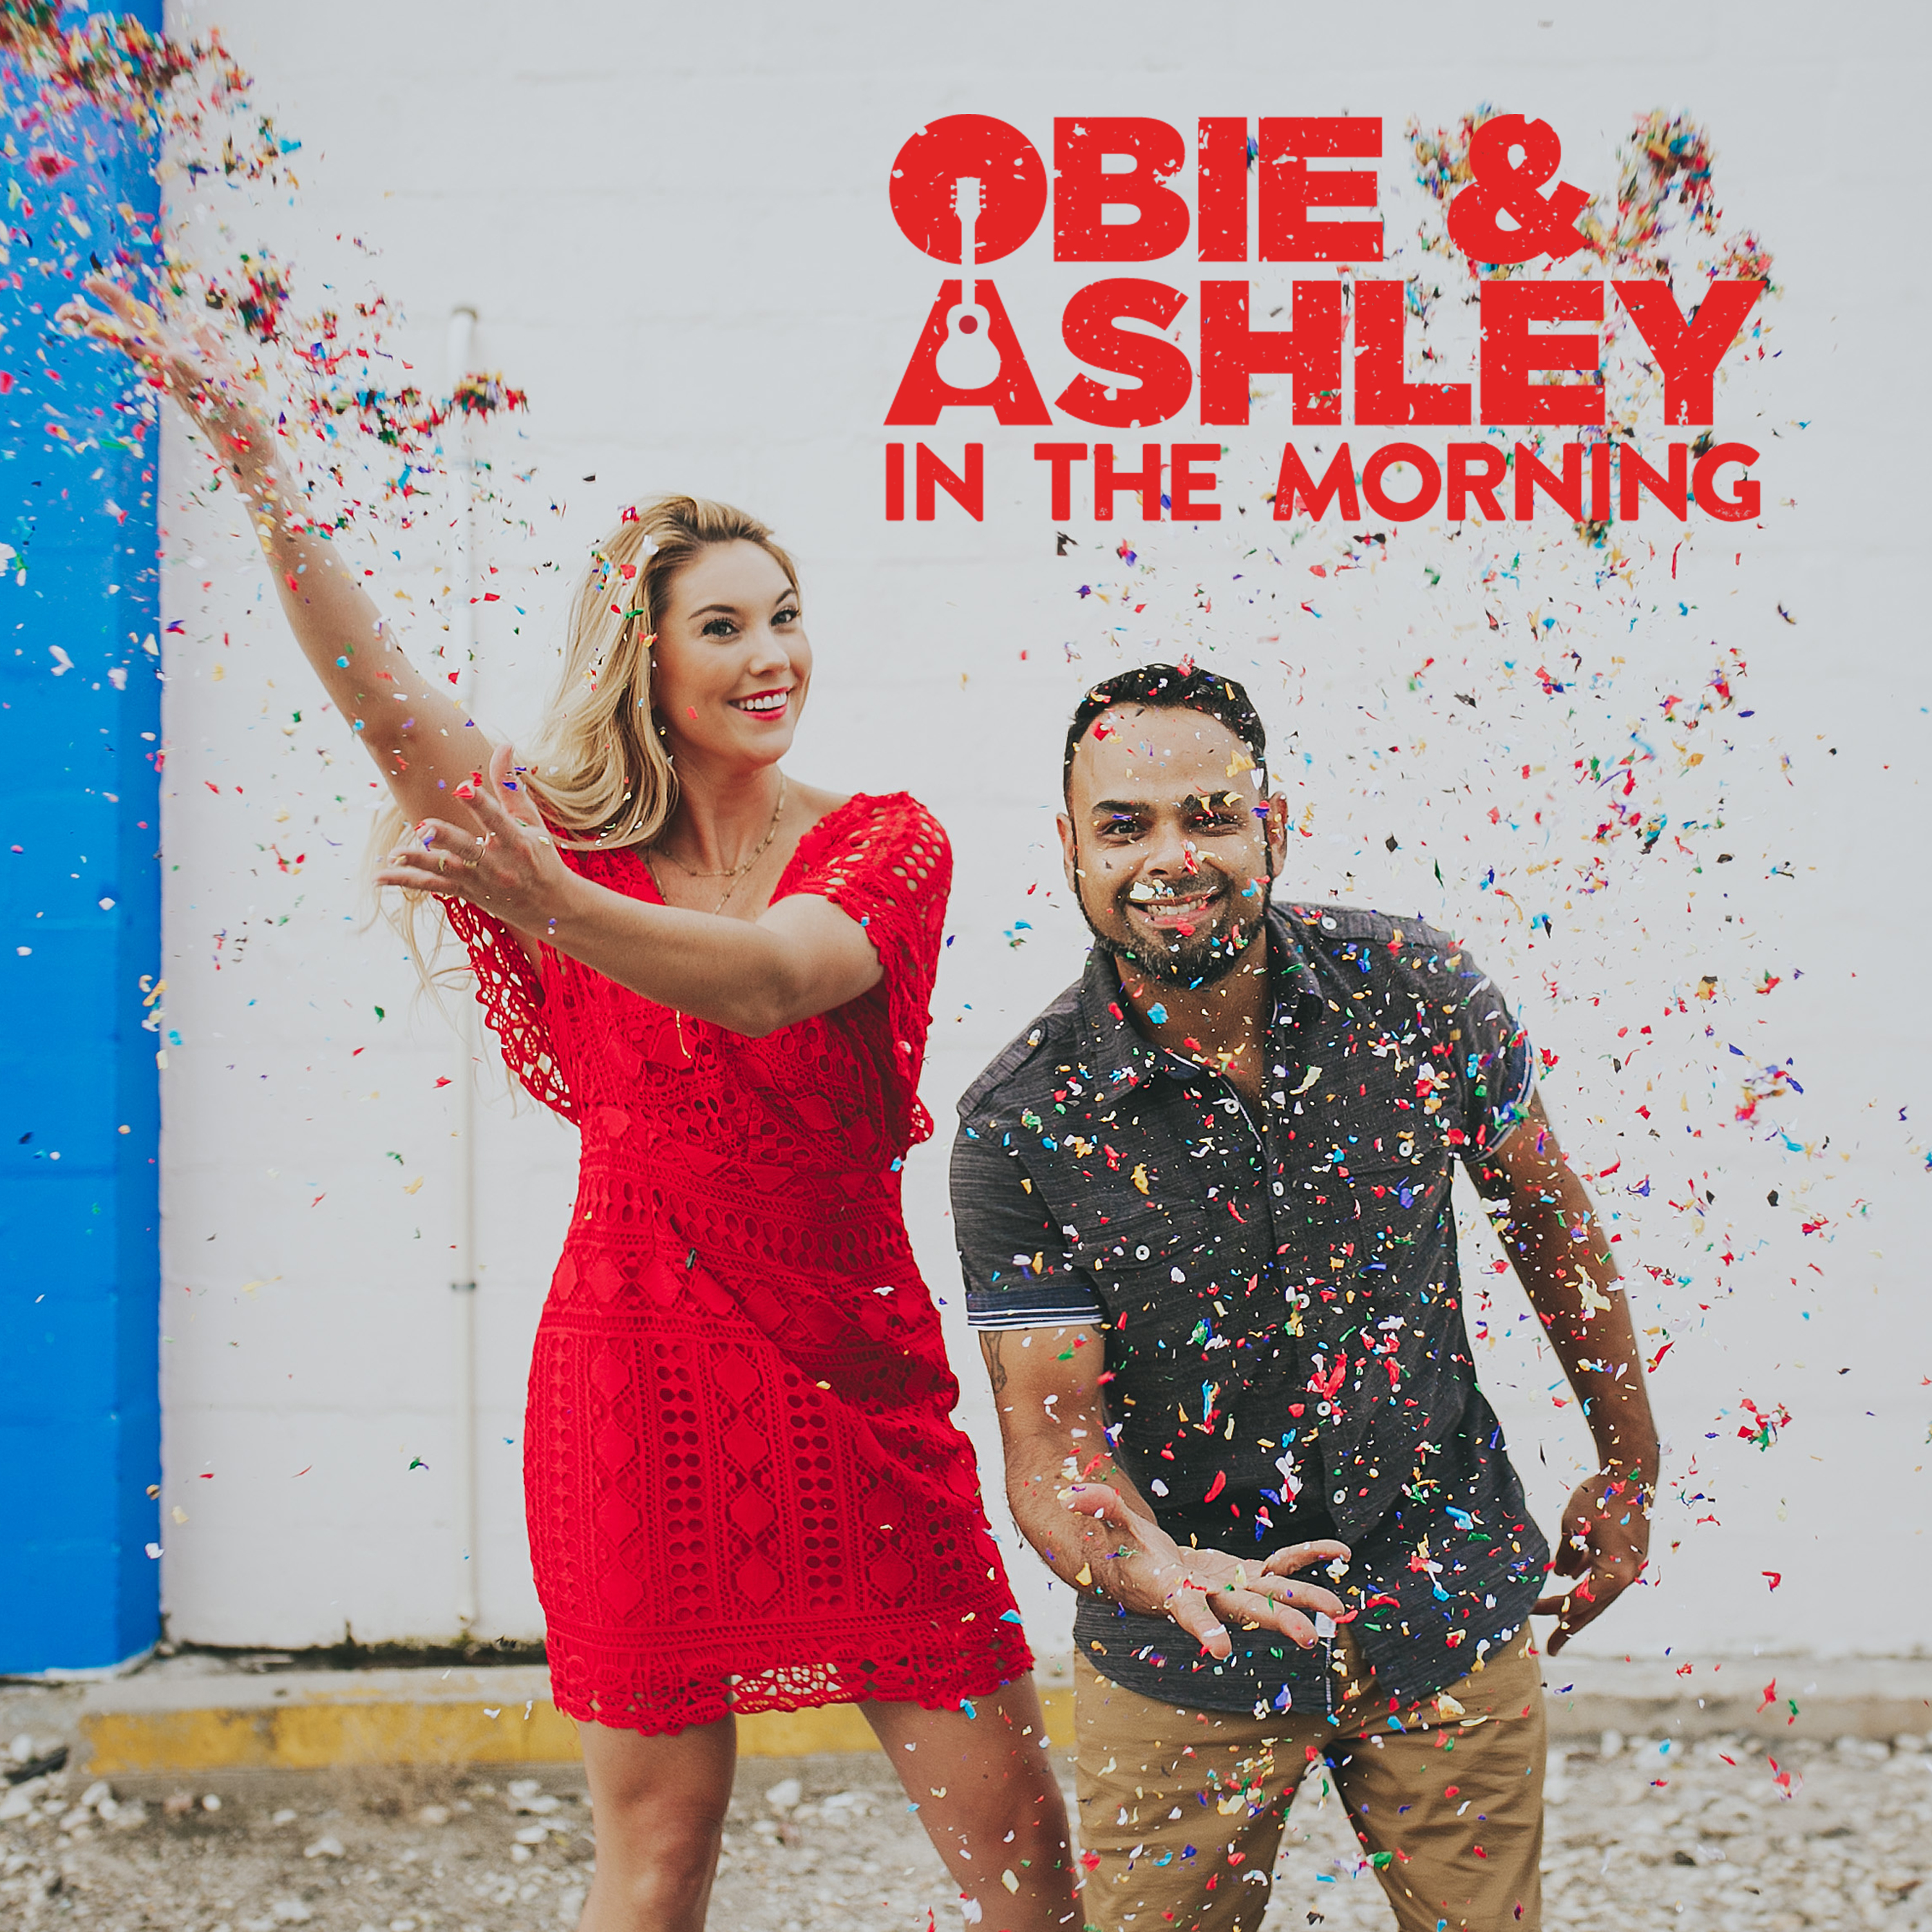 Obie & Ashley